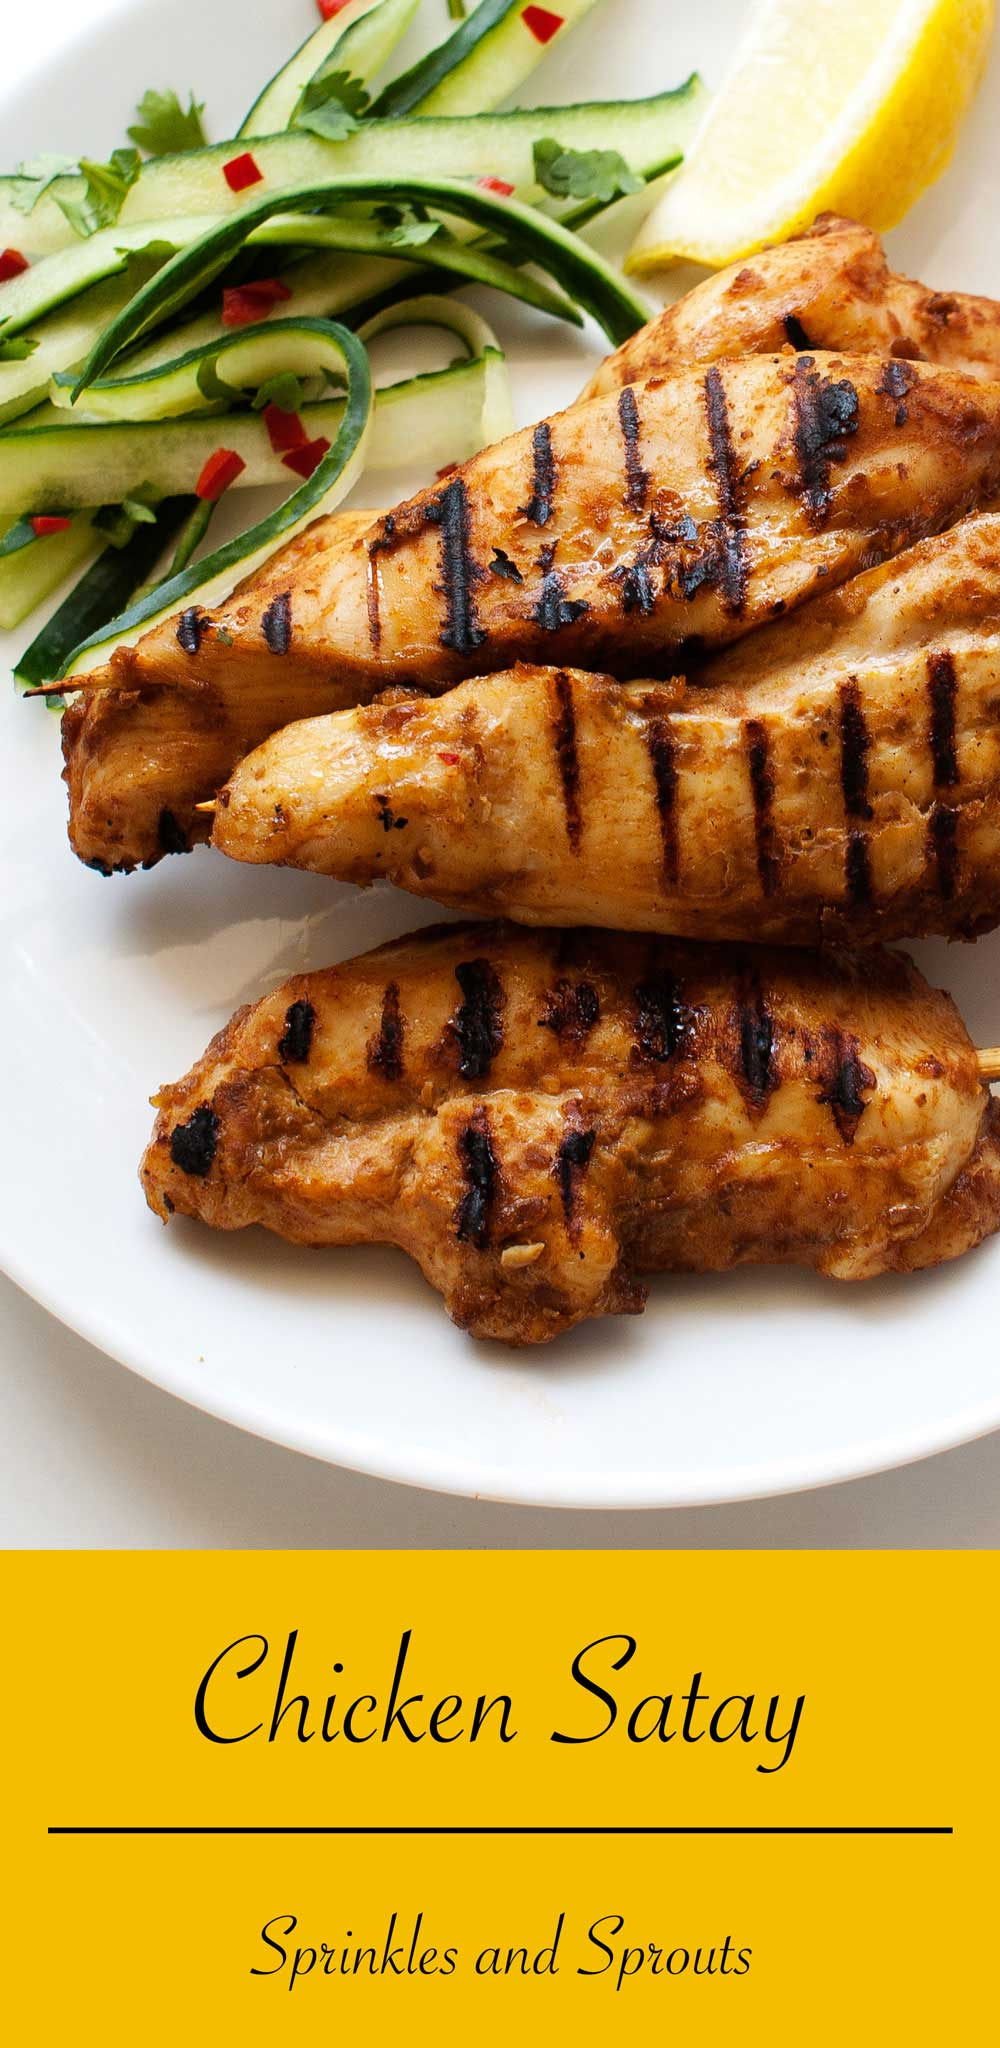 Chicken Satay. A delicious way to enjoy chicken breasts. Perfect for a snack or easy dinner.